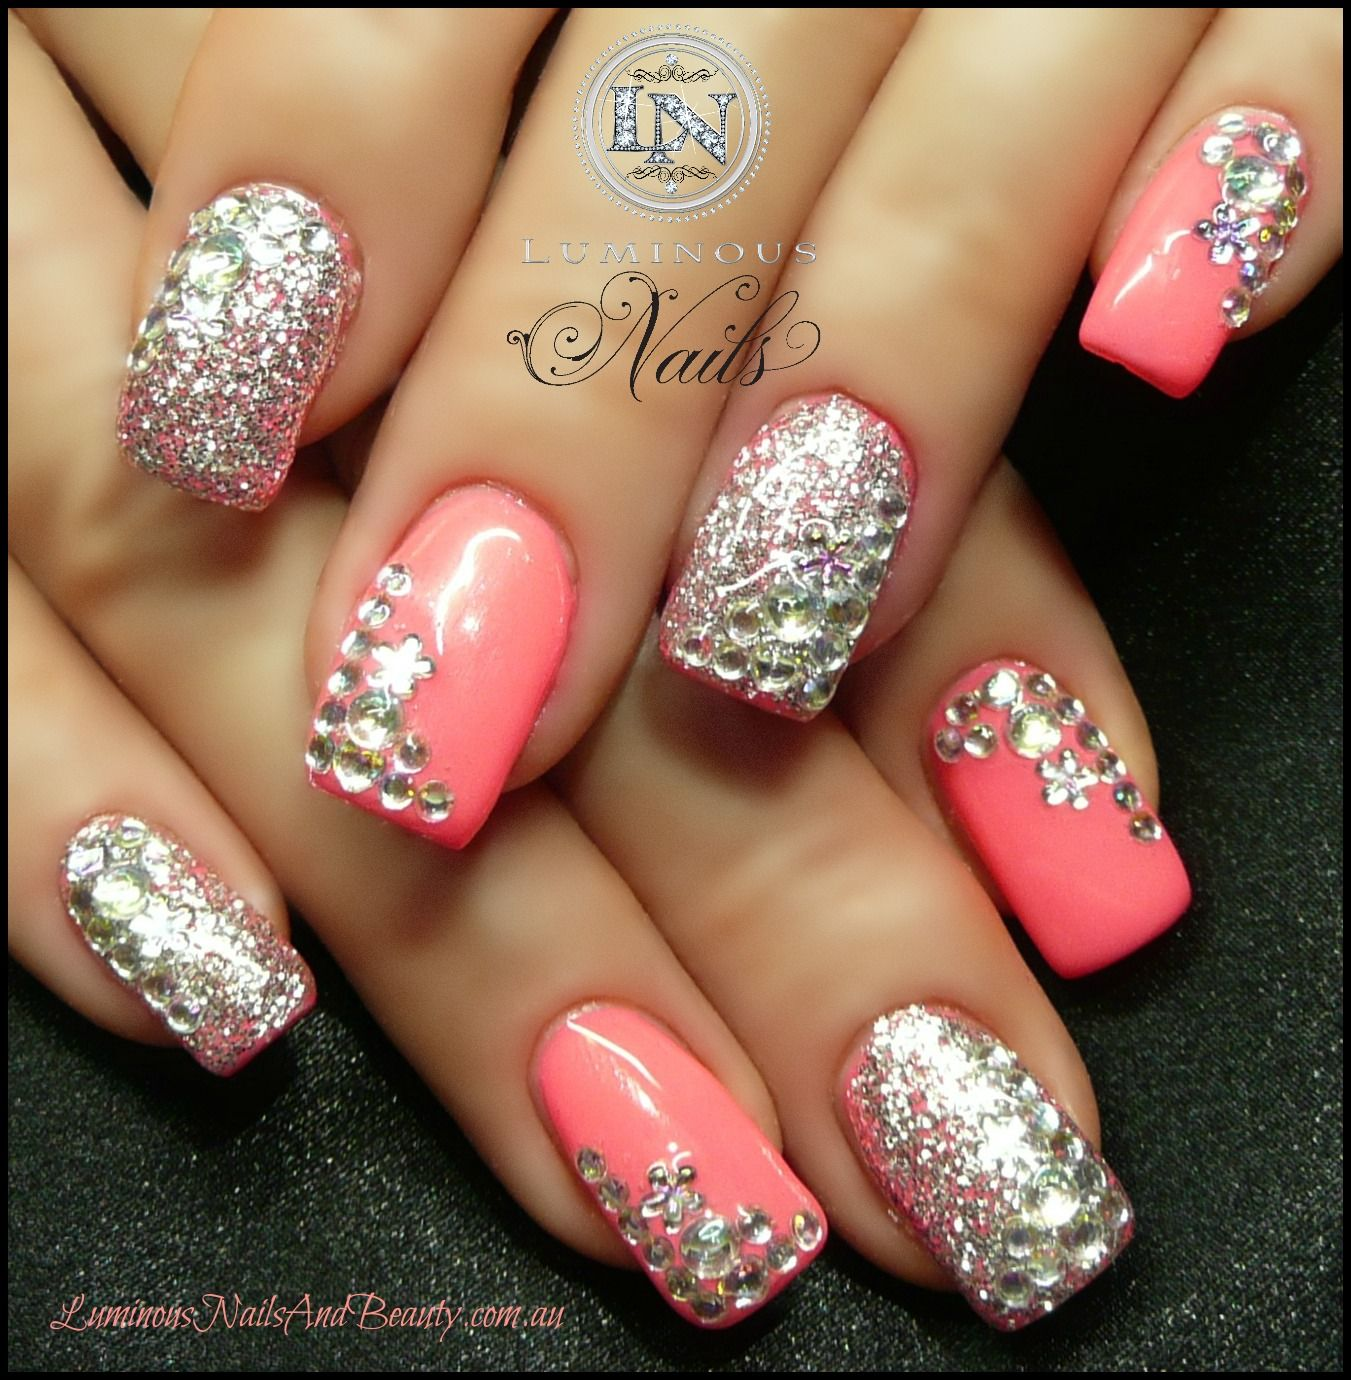 Luminous nails december 2012 nails pinterest glitter nails luminous nails december 2012 prinsesfo Choice Image